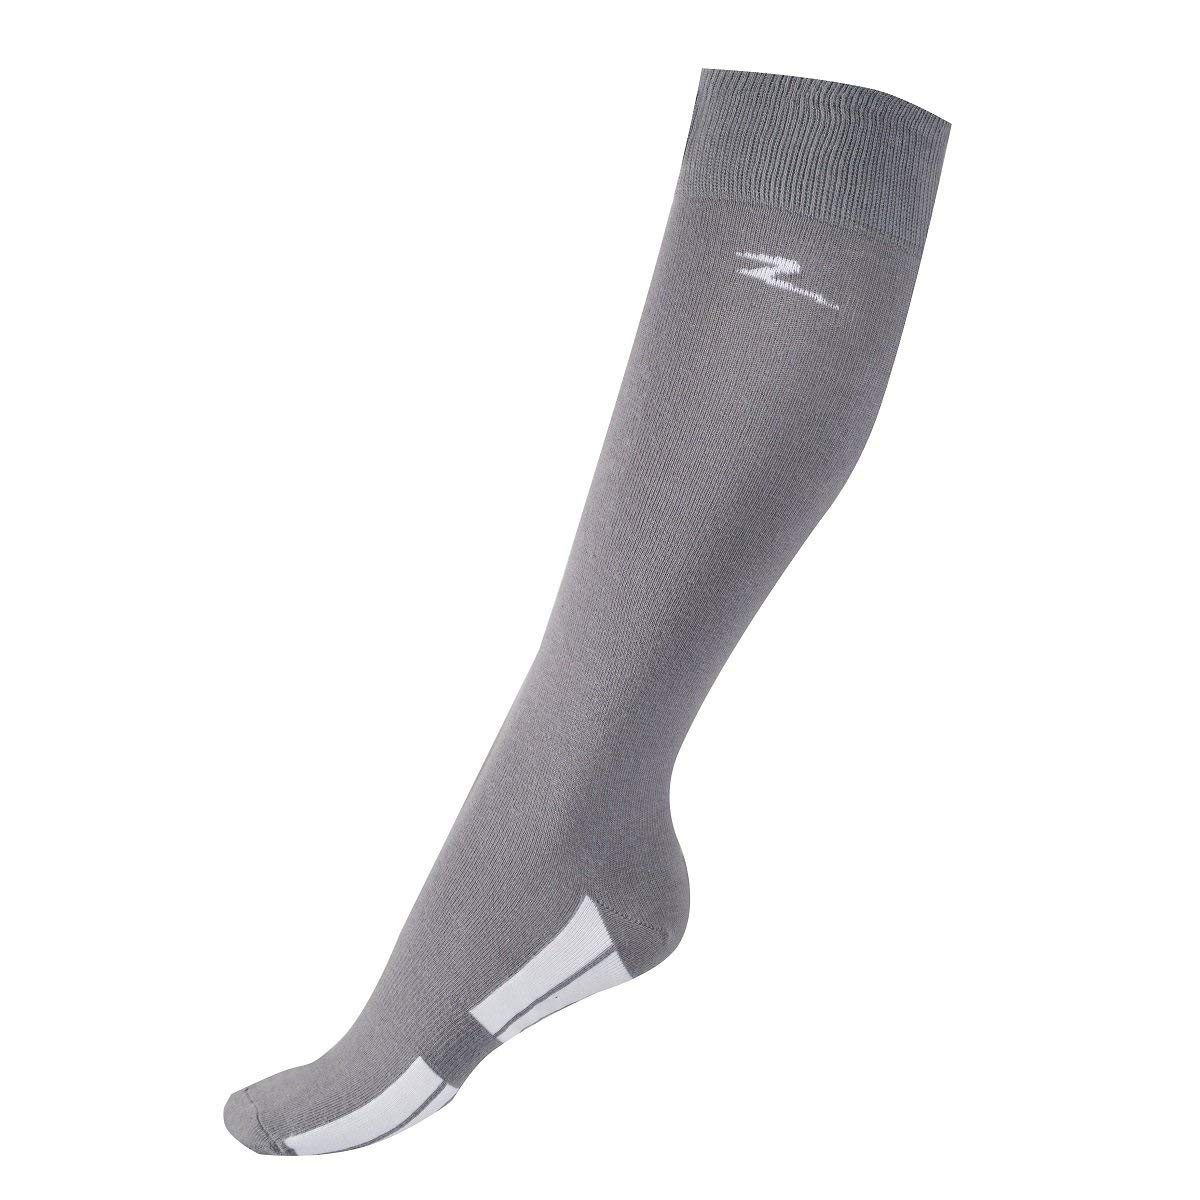 8bc53de9e Get Quotations · Horze STEEL GREY Adult Coolmax Tall Knee Stretchable  Breathable Tread Socks (US 6-7.5